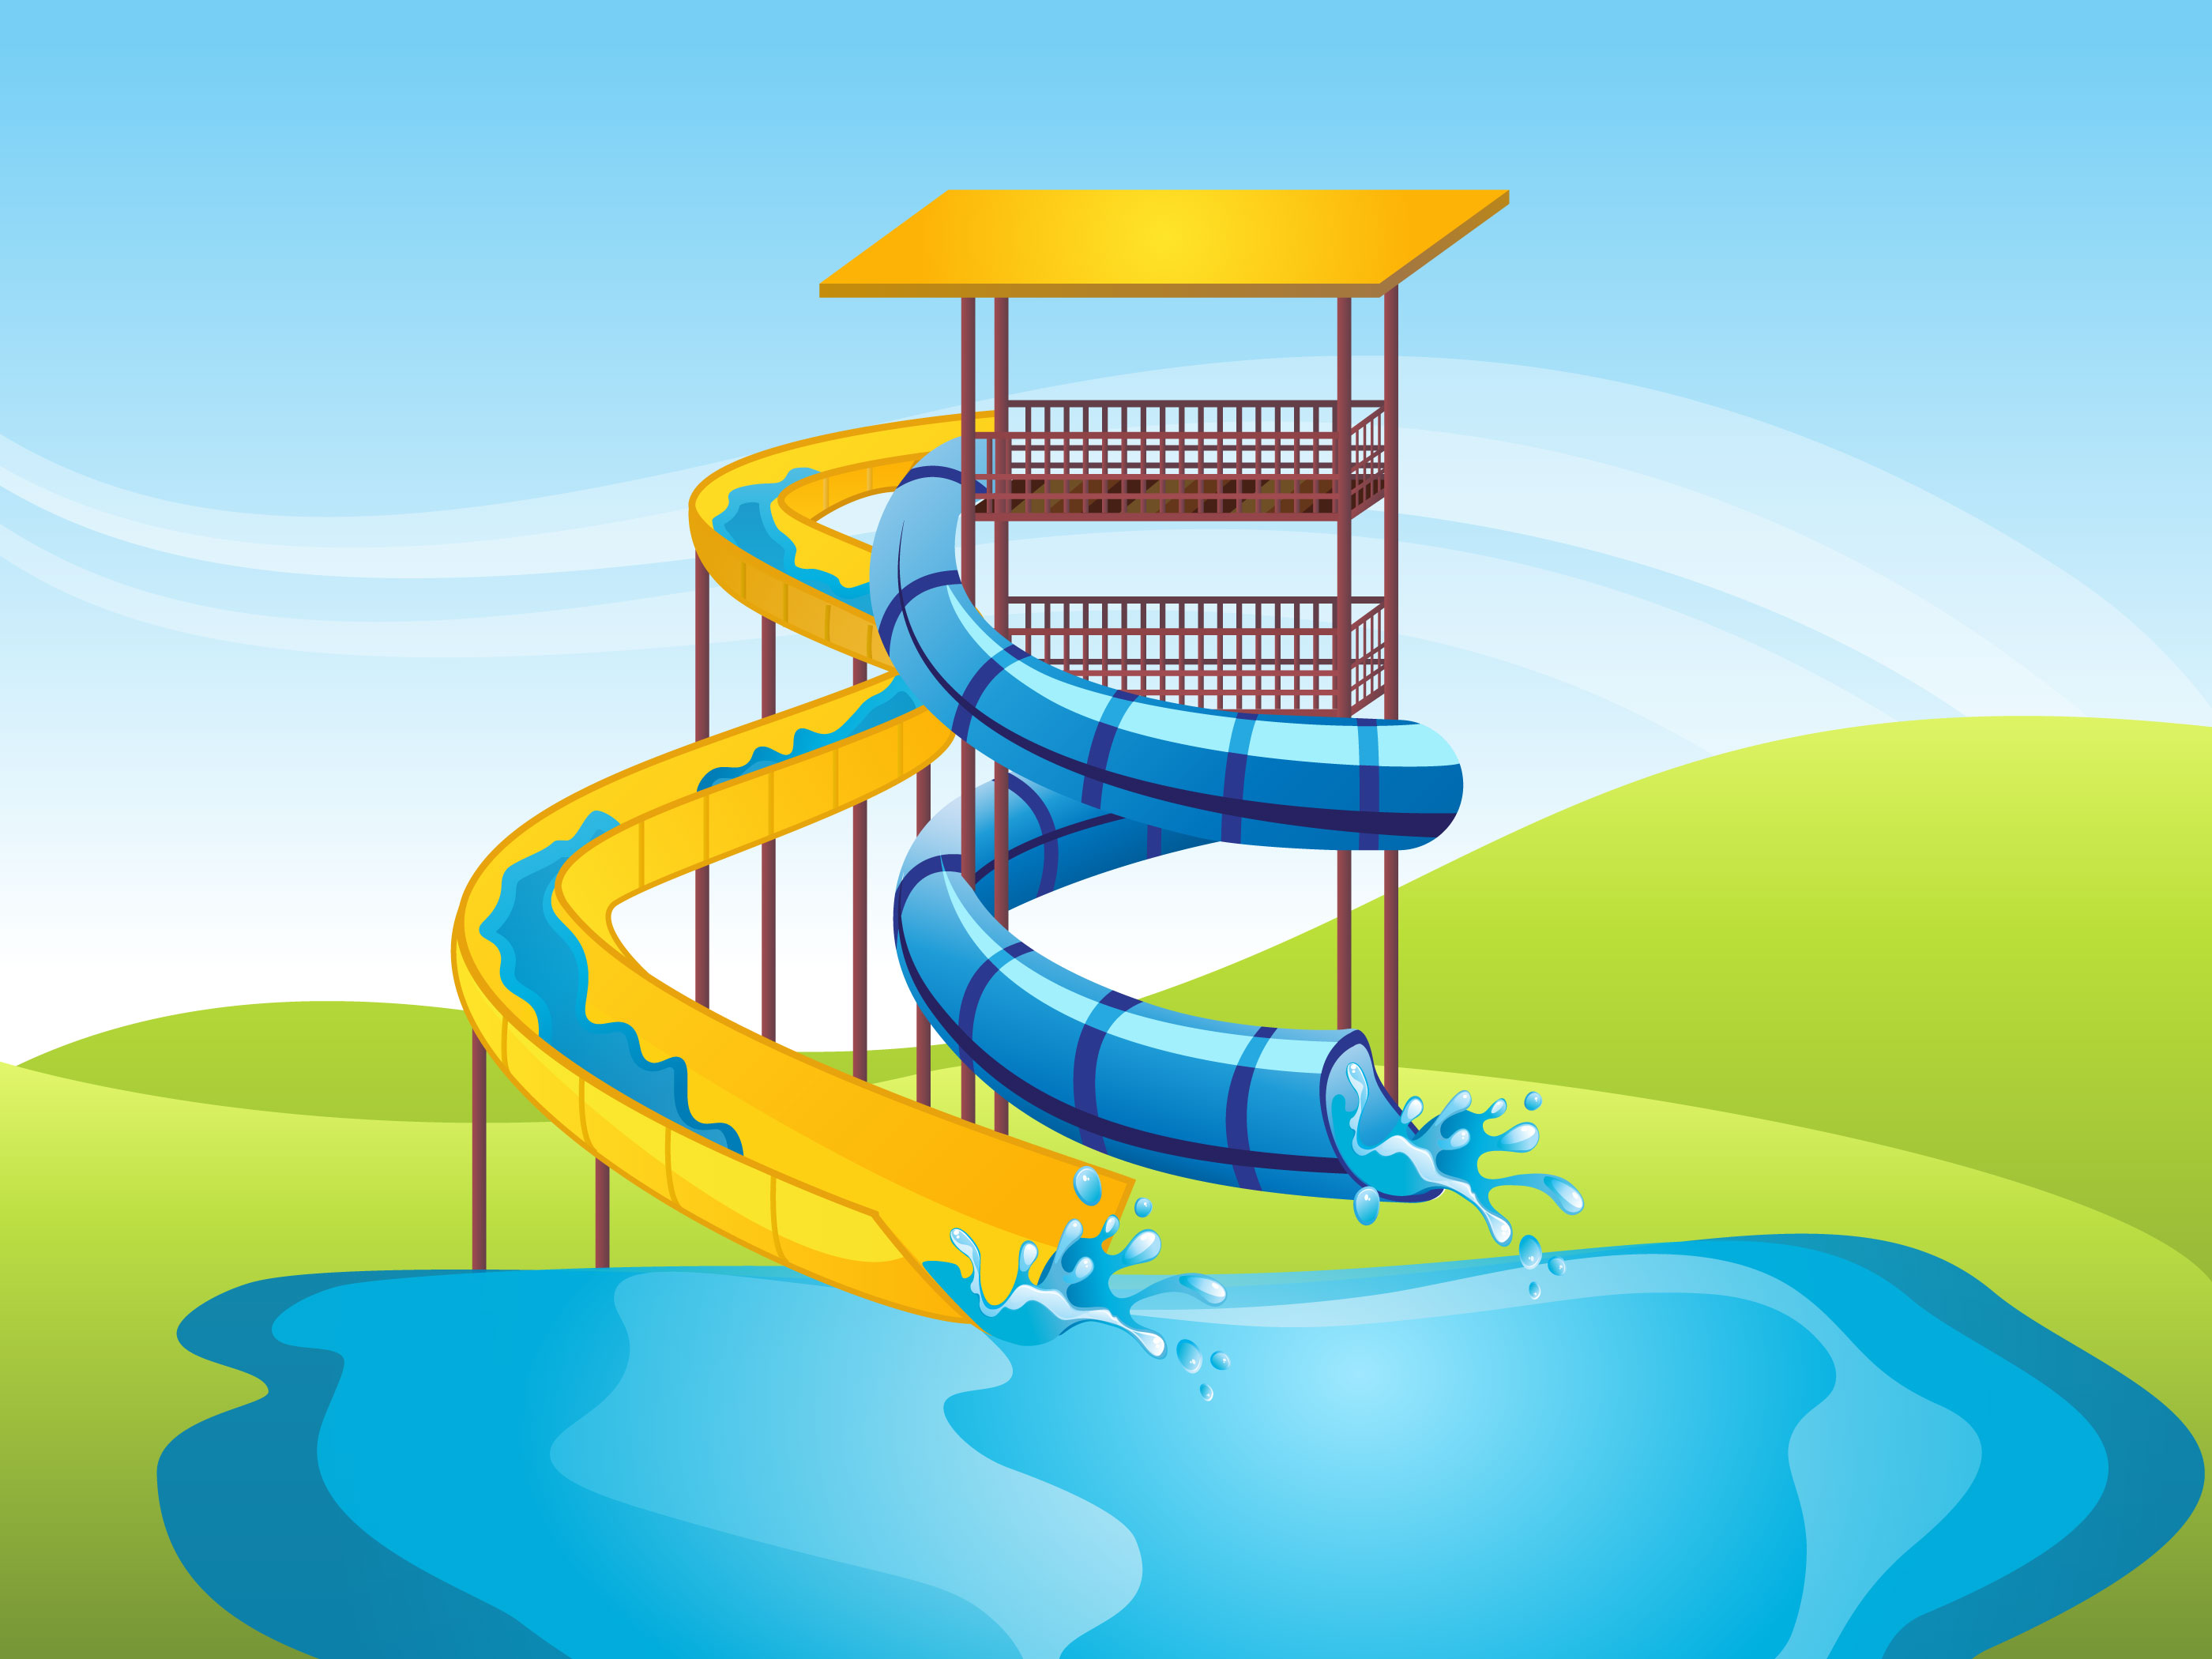 Water Slide Vector Background - Download Free Vector Art ...